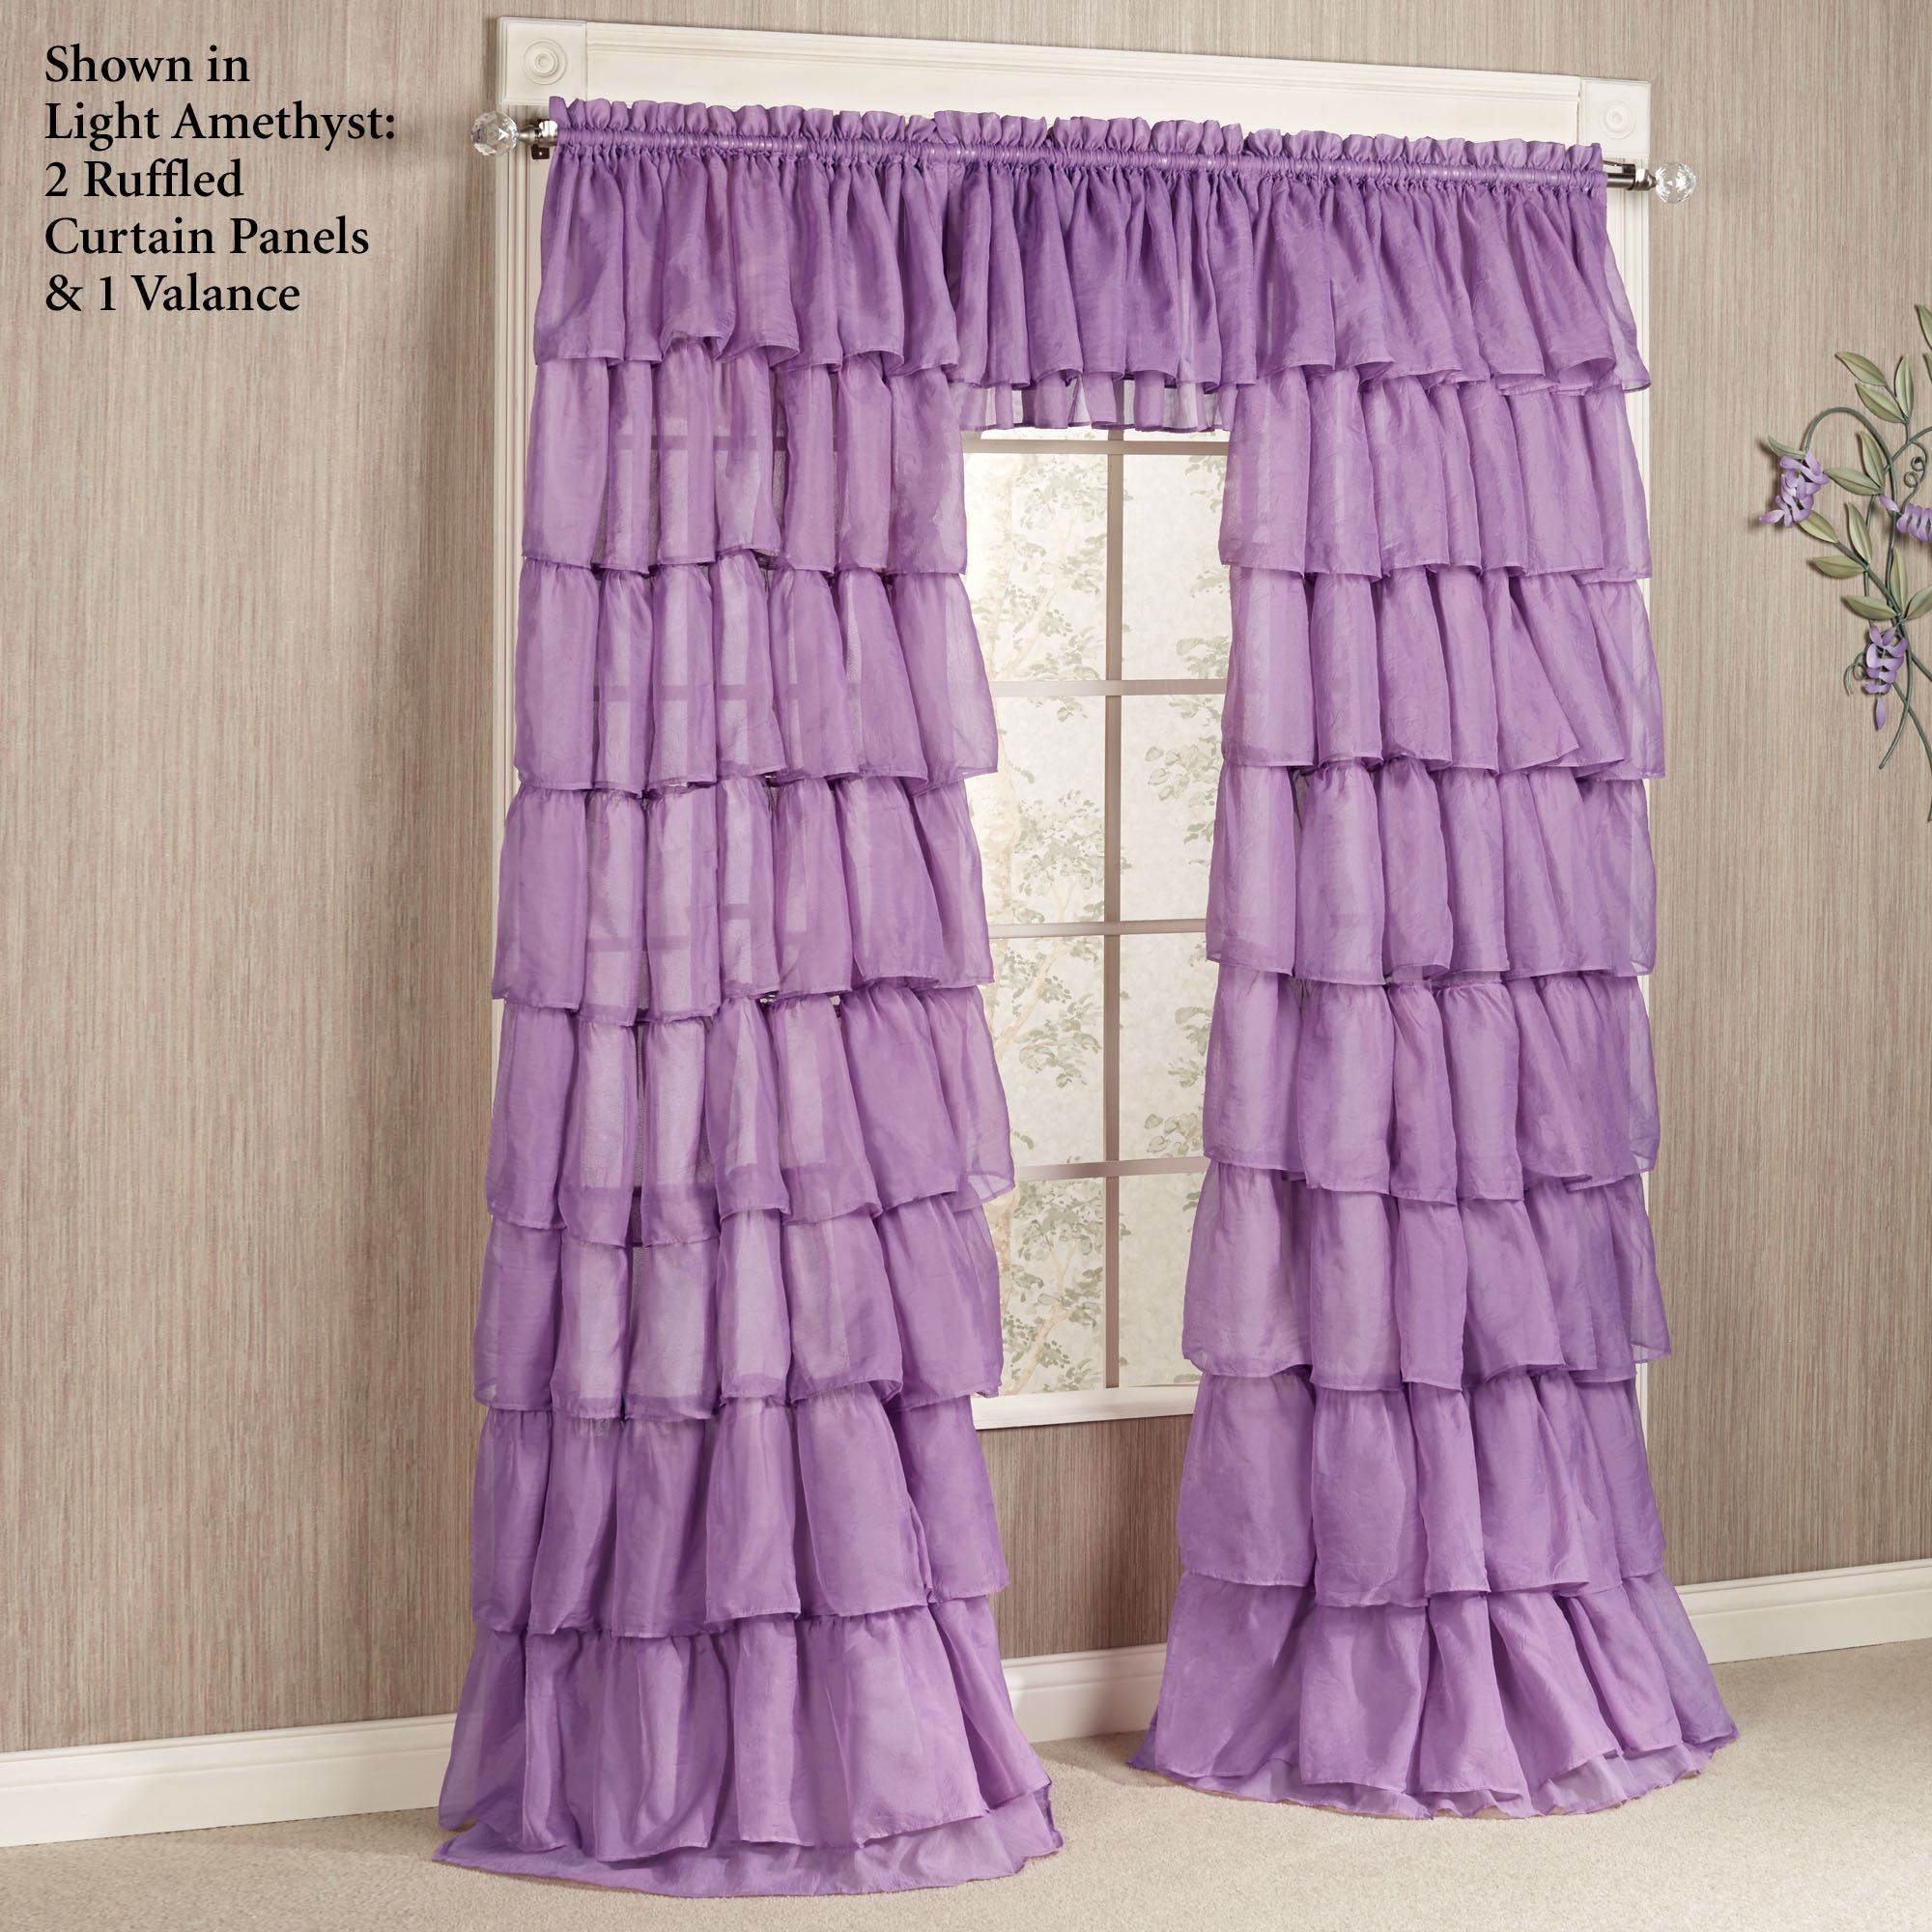 Gypsy Ruffled Curtain Panel